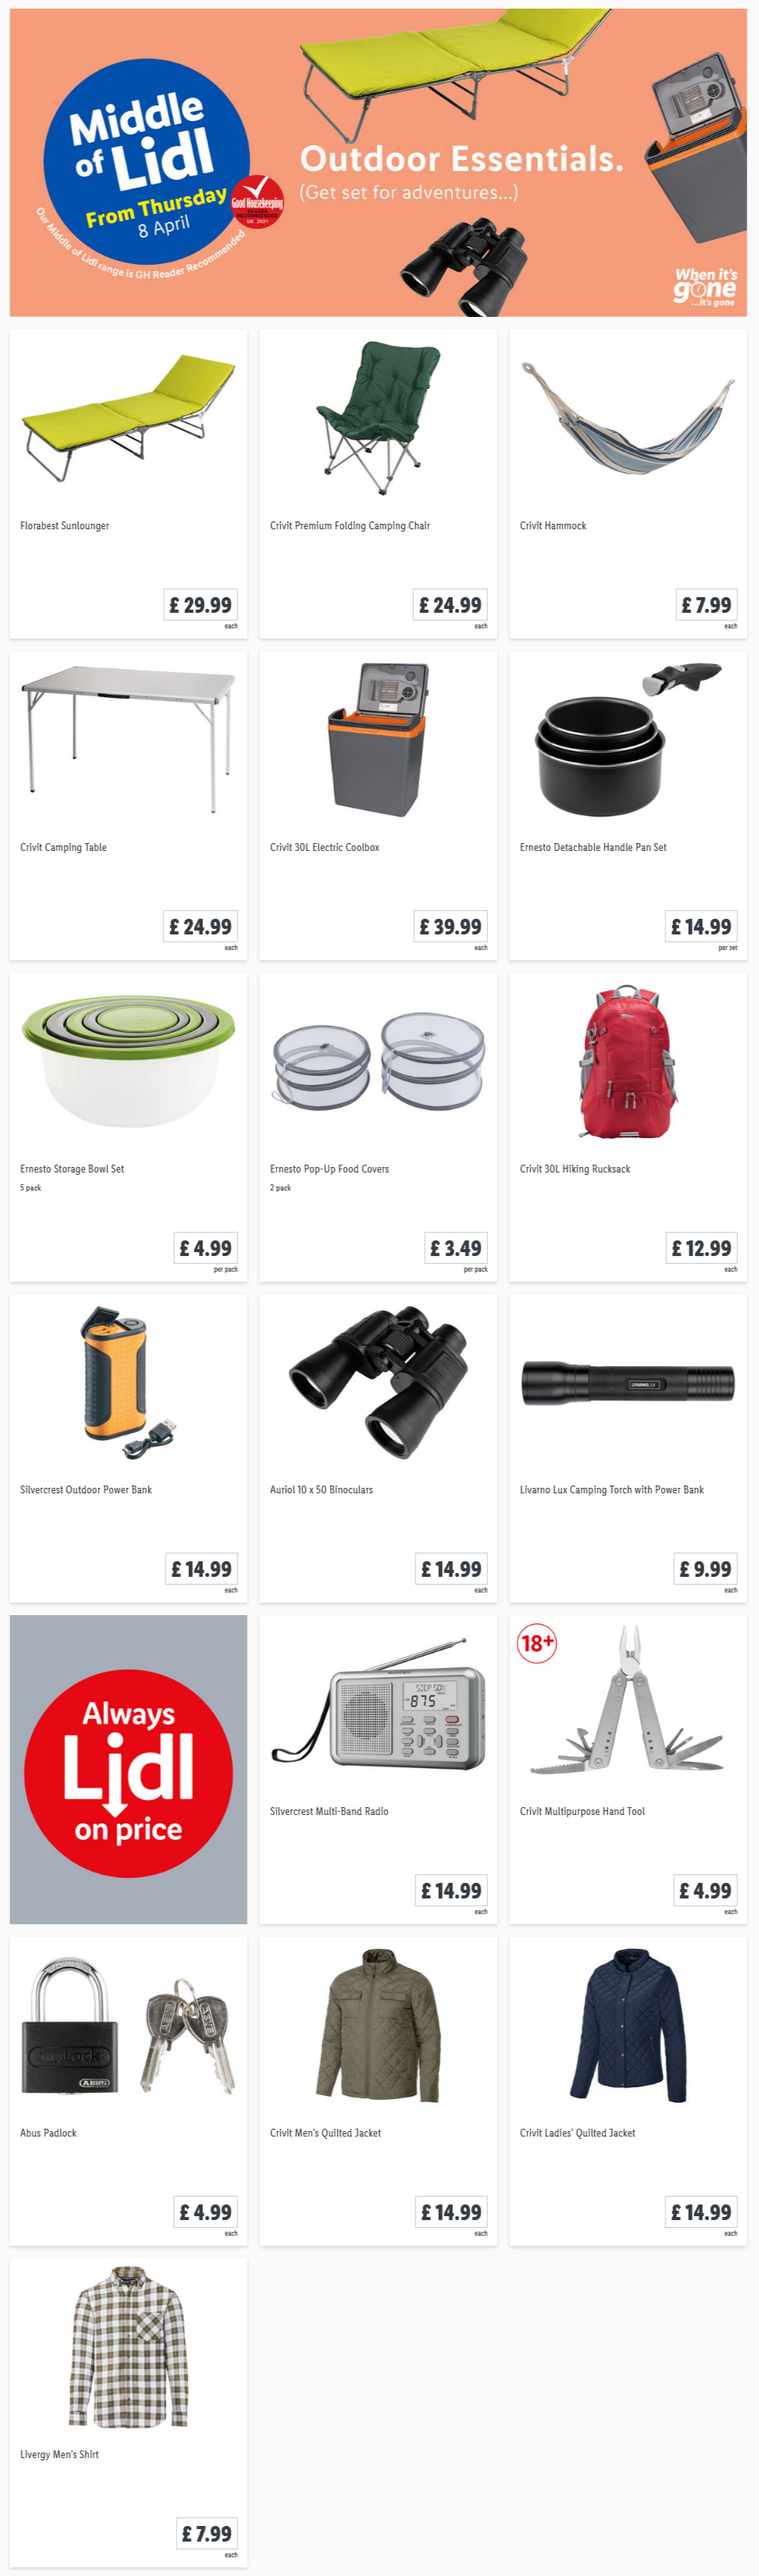 LiDL Outdoor Essentials From 8th April 2021 LIDL Offers this Thursday